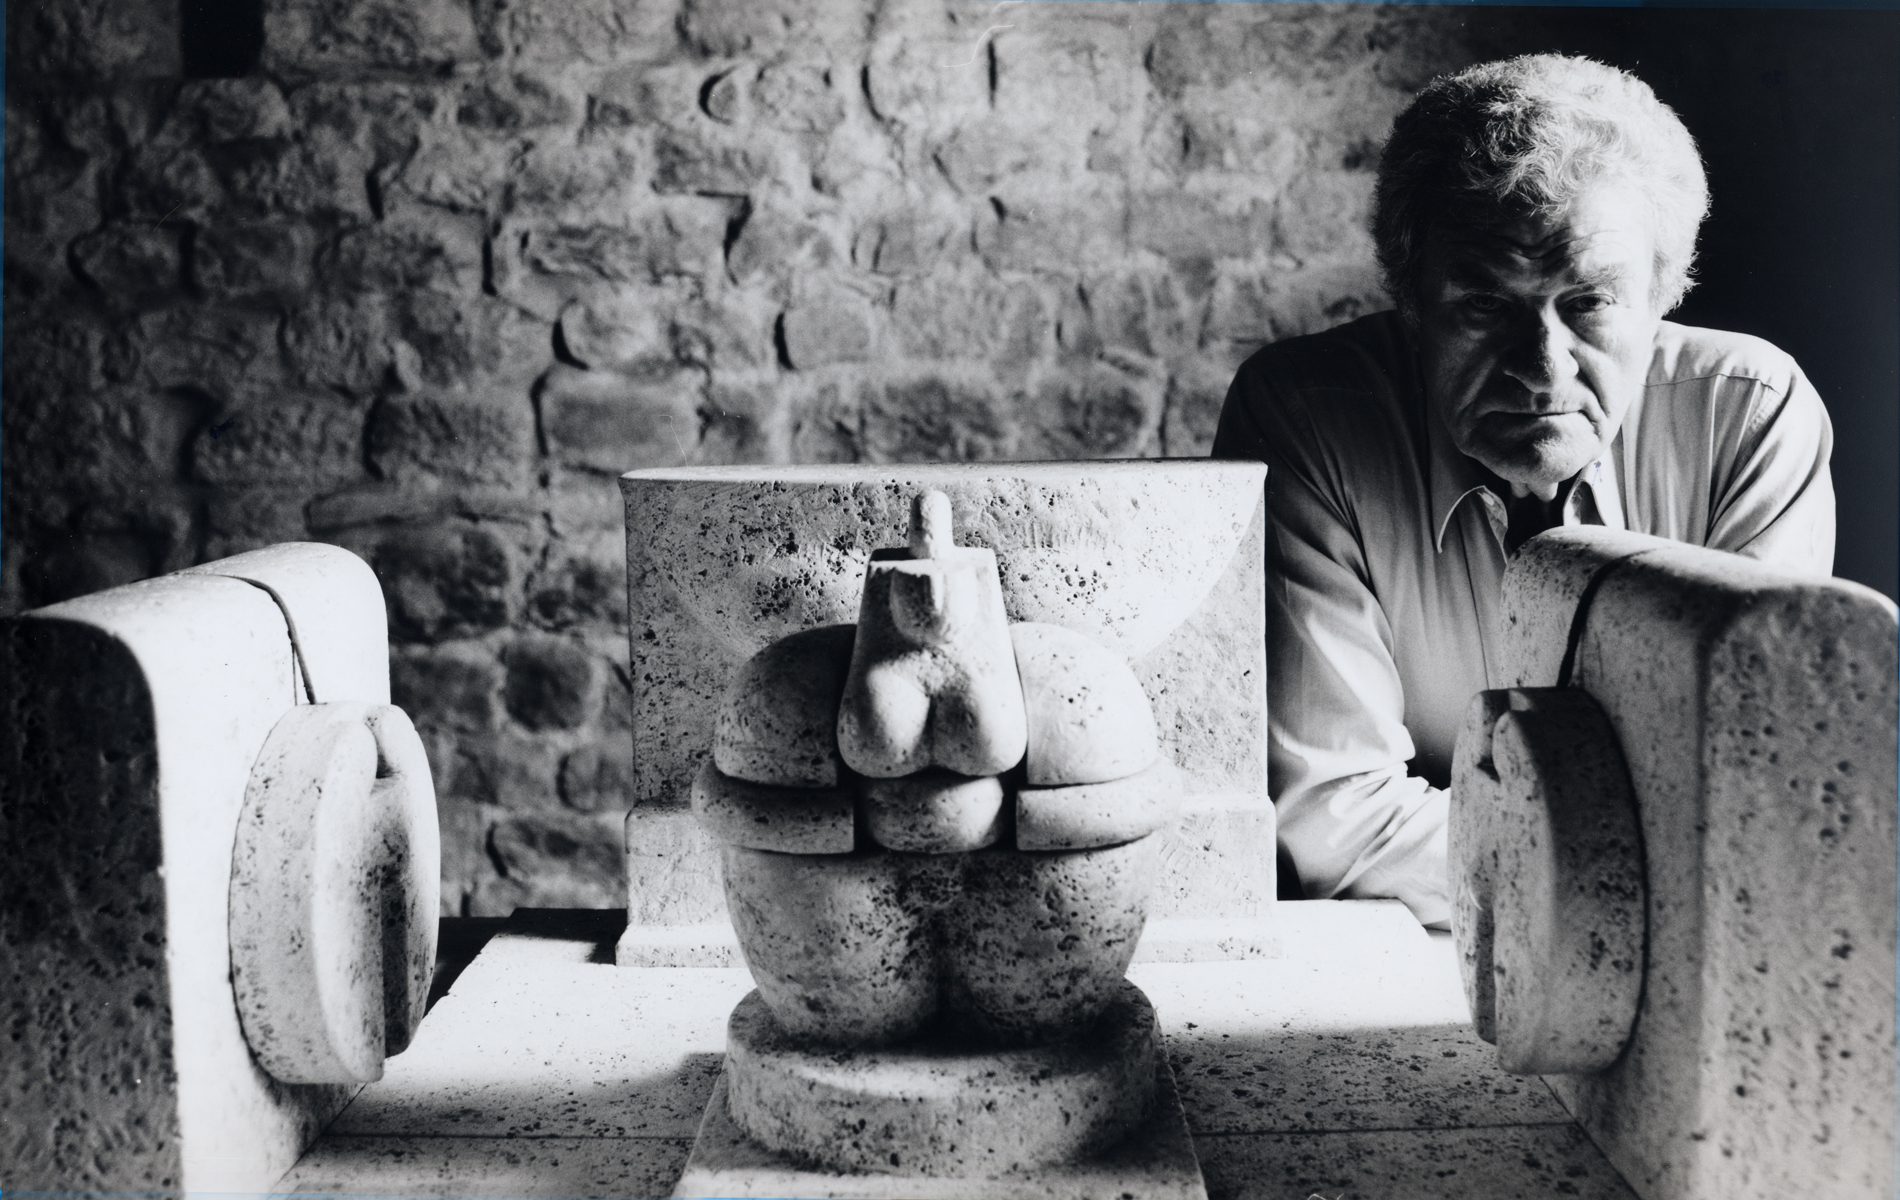 PIETRO CASCELLA - Sculptor - for